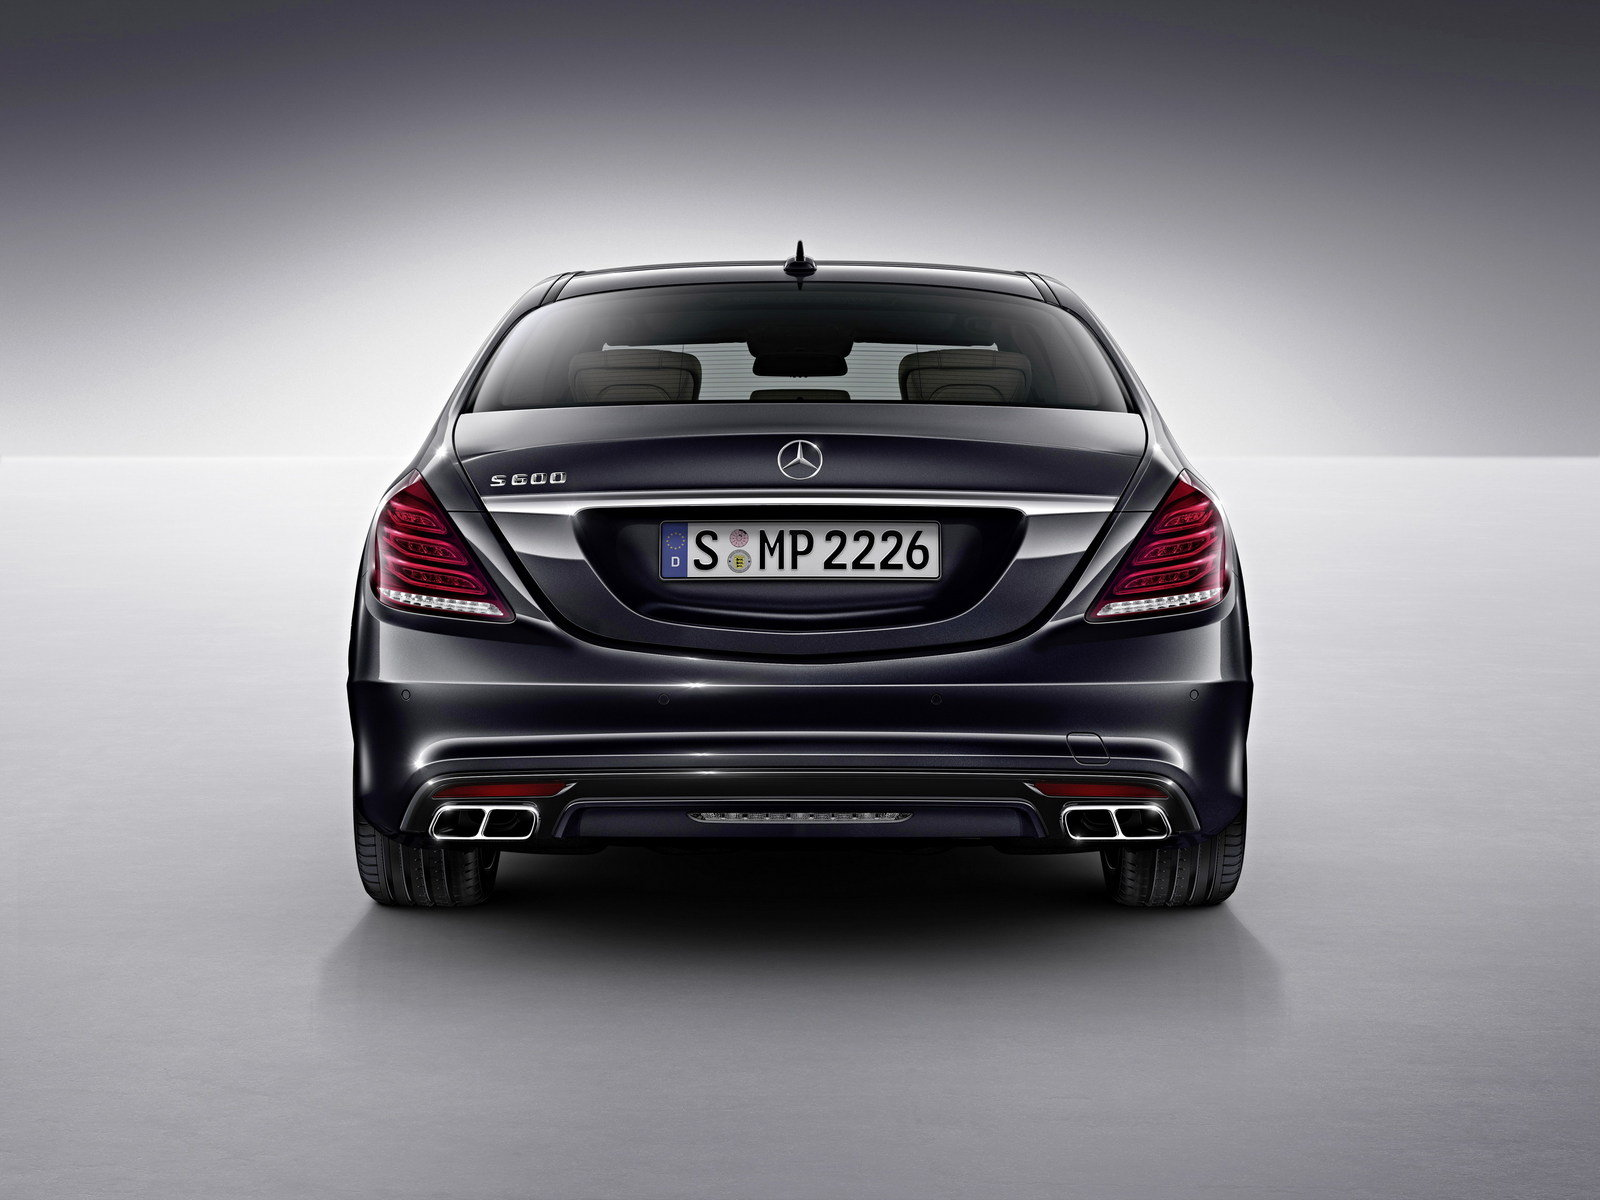 Image gallery mb s600 for Mercedes benz s guard for sale